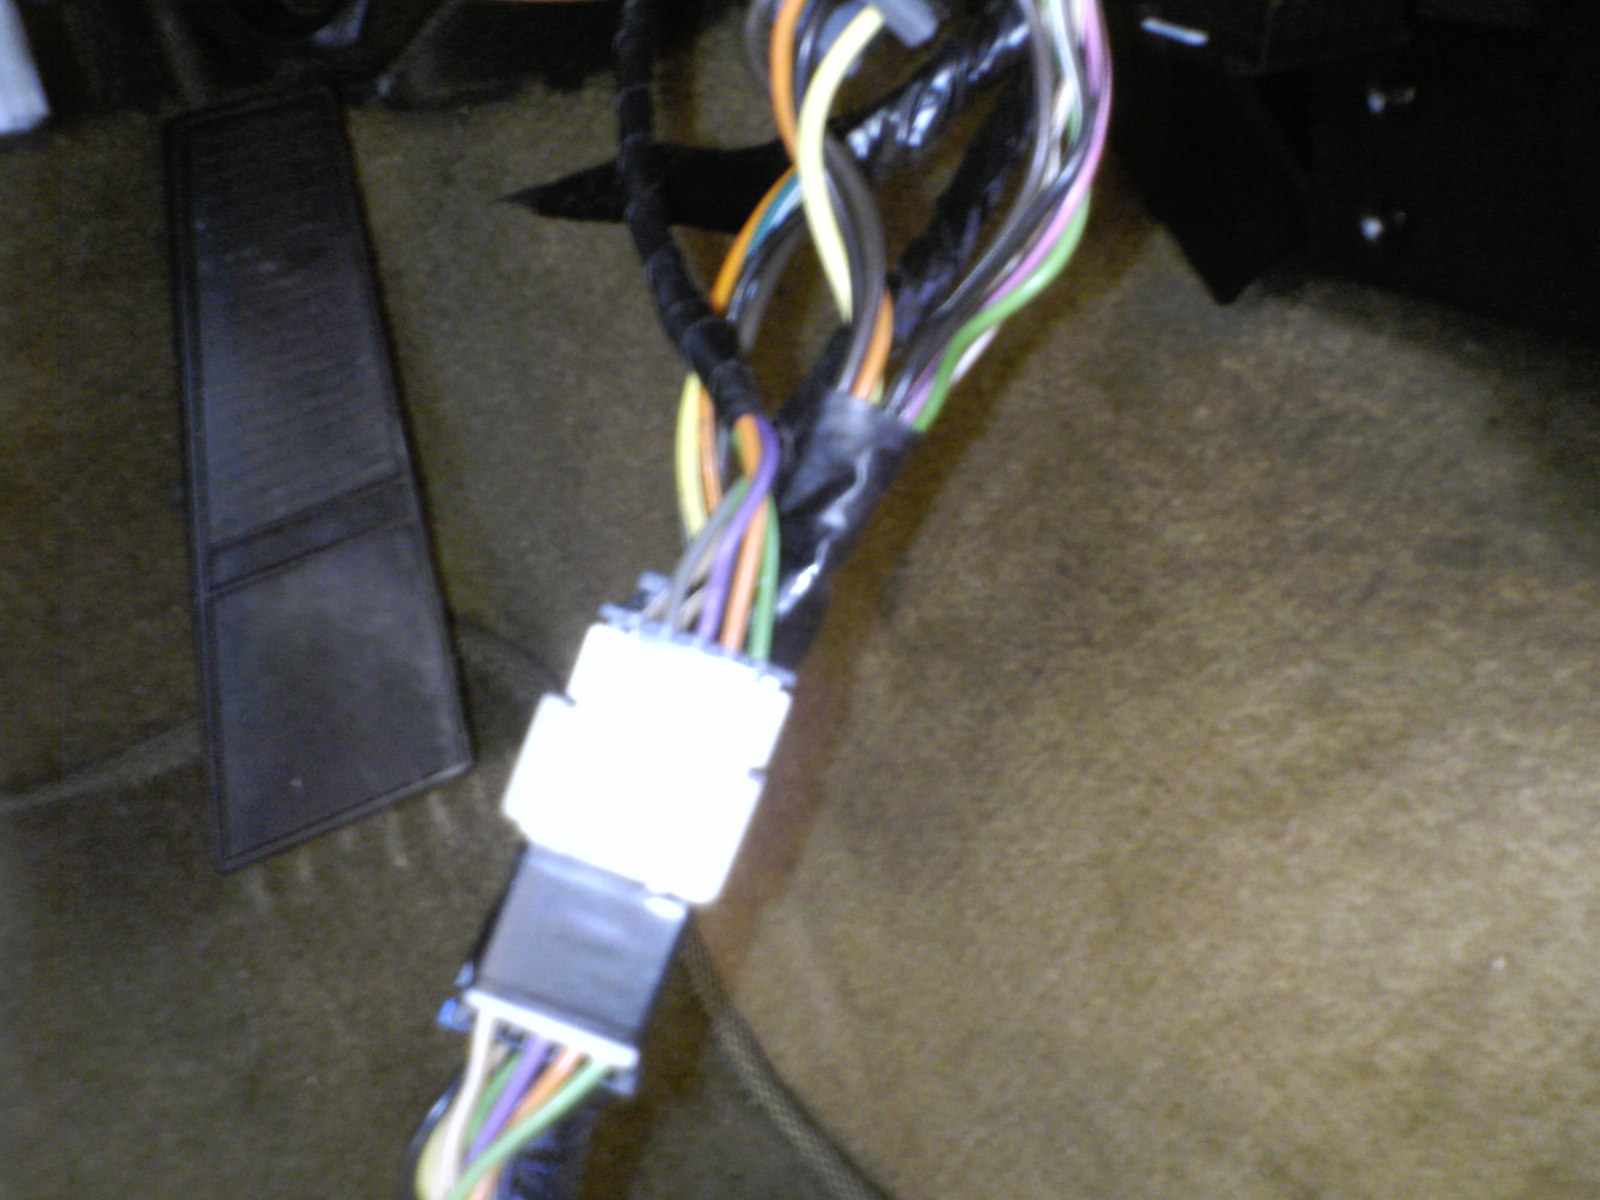 Ip Wiring Harness Sony Cdx Gt Wire Colors Auto Diagram Caprice Twilight Sentinel Install The Only Gotcha On Is If You Use A Buick